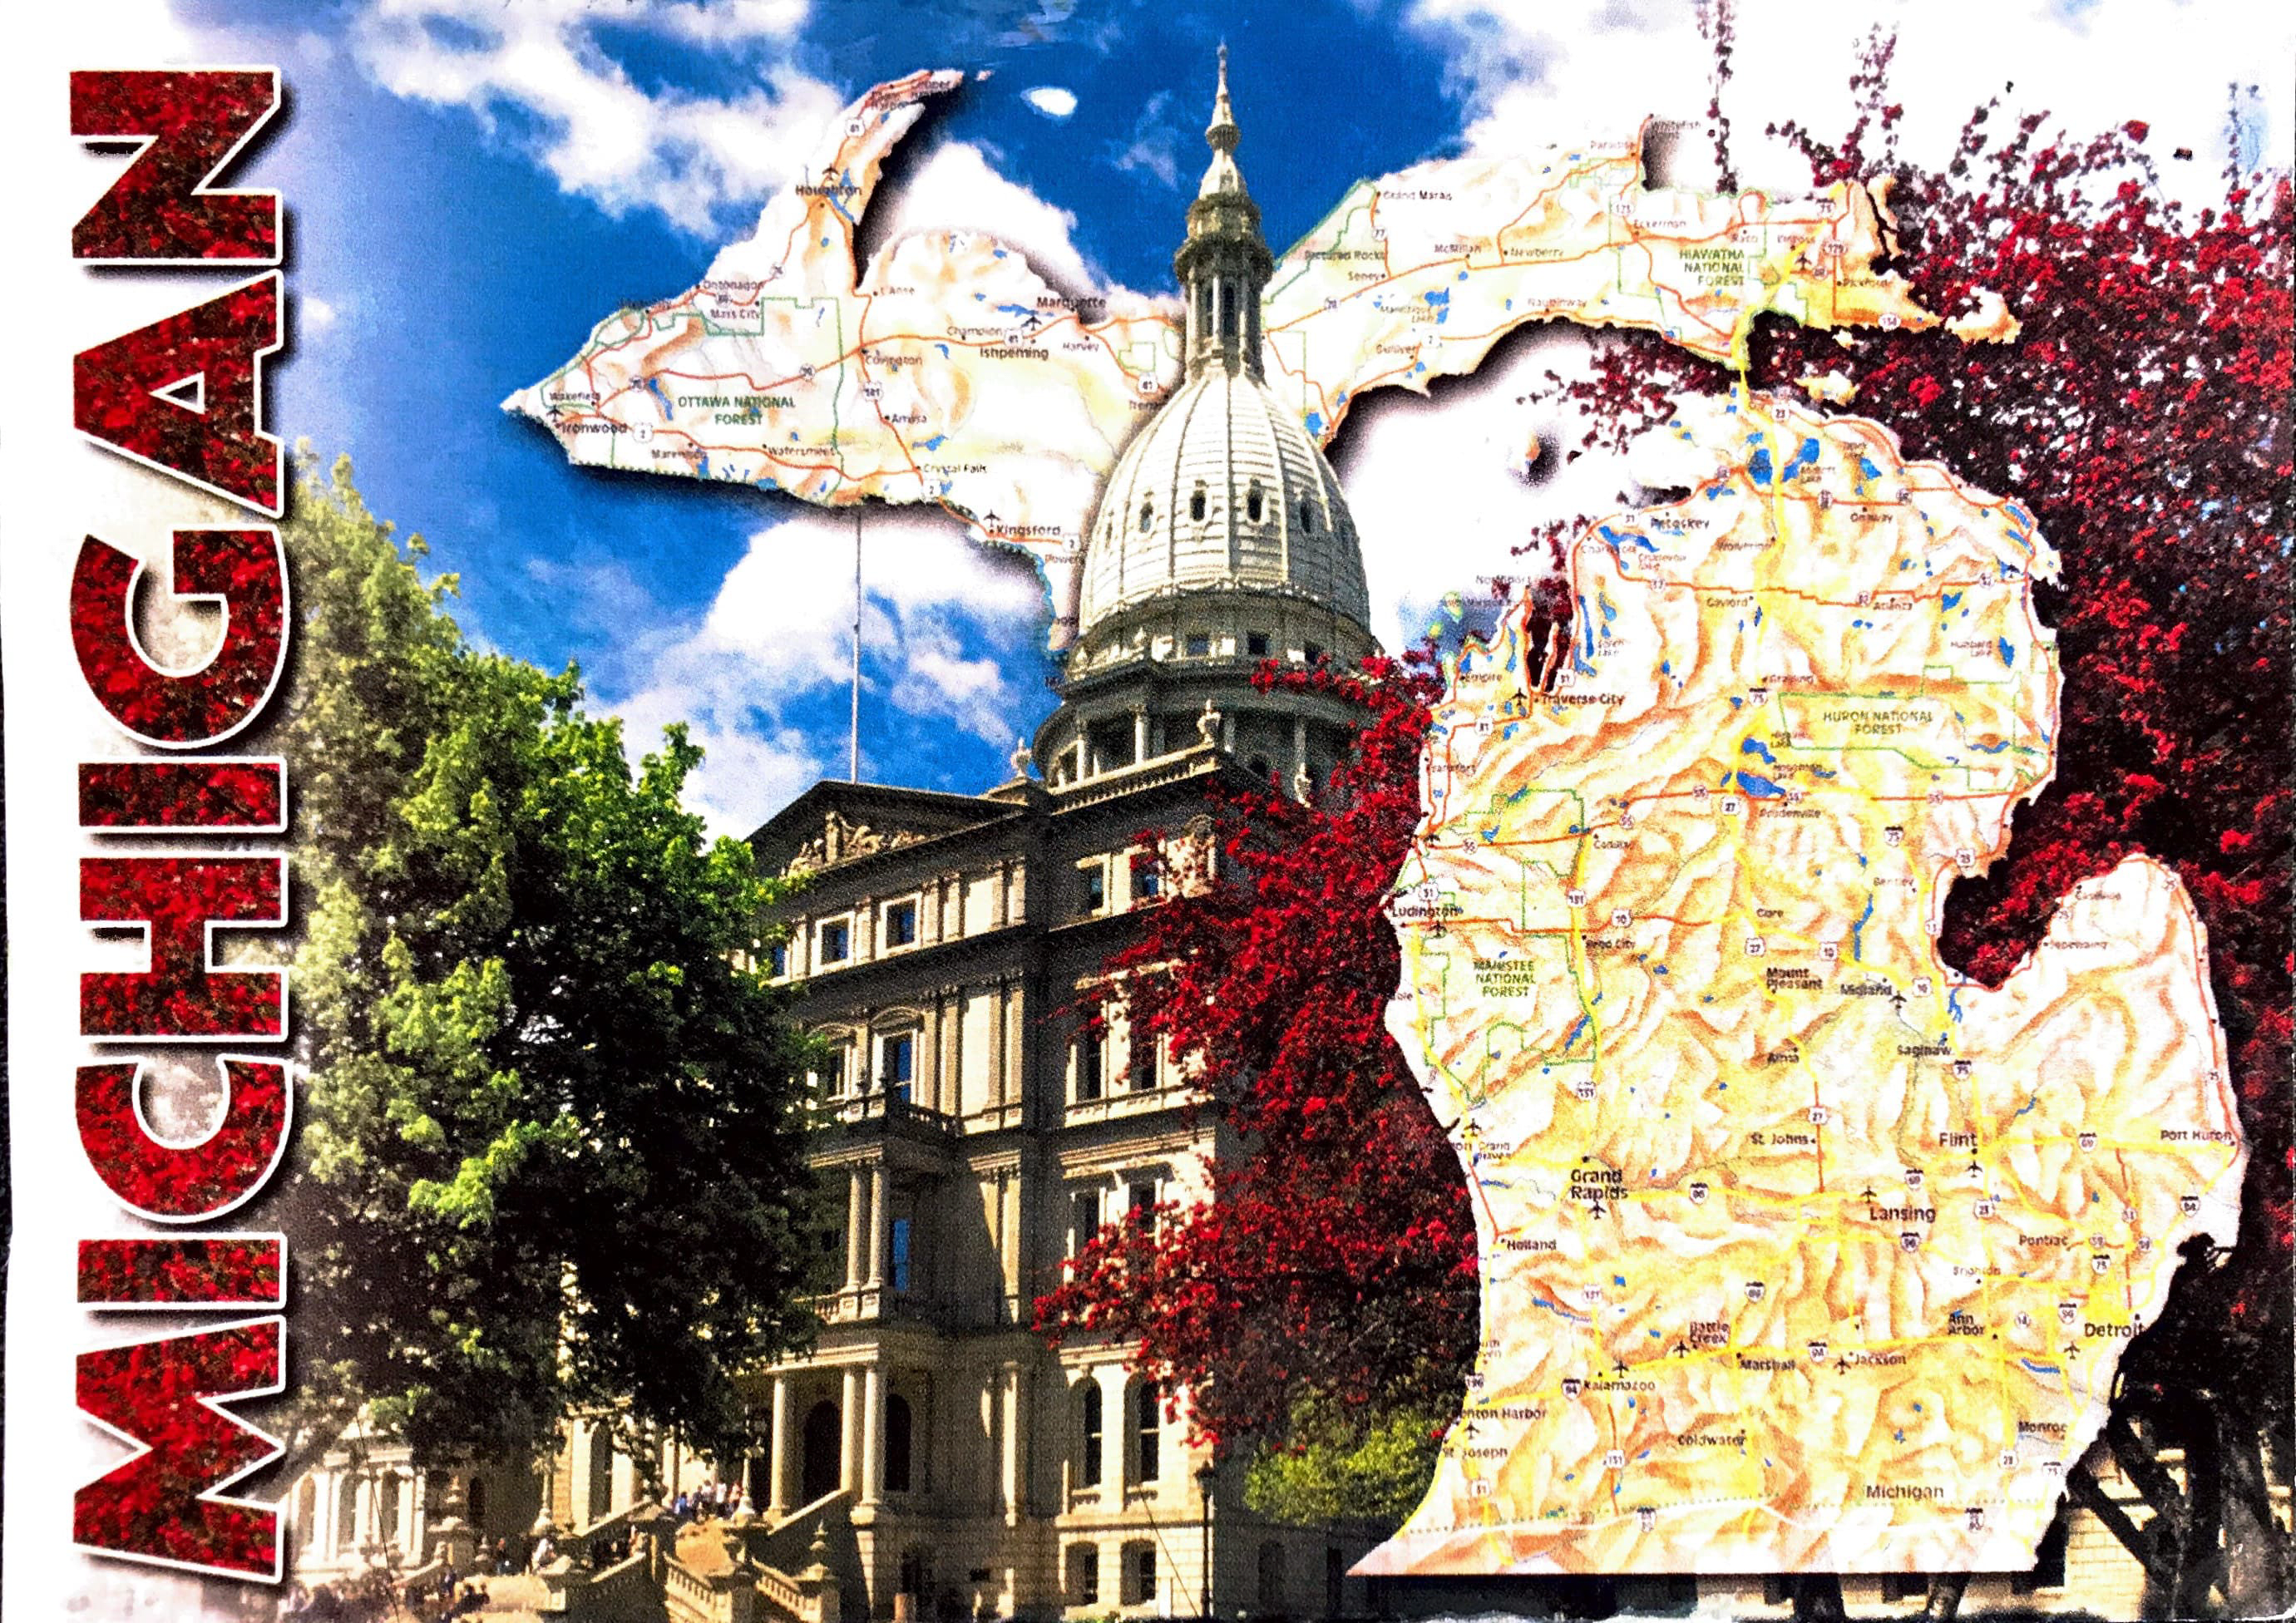 Cover of postcard from Jessie Micallef (Michigan State University, USA)